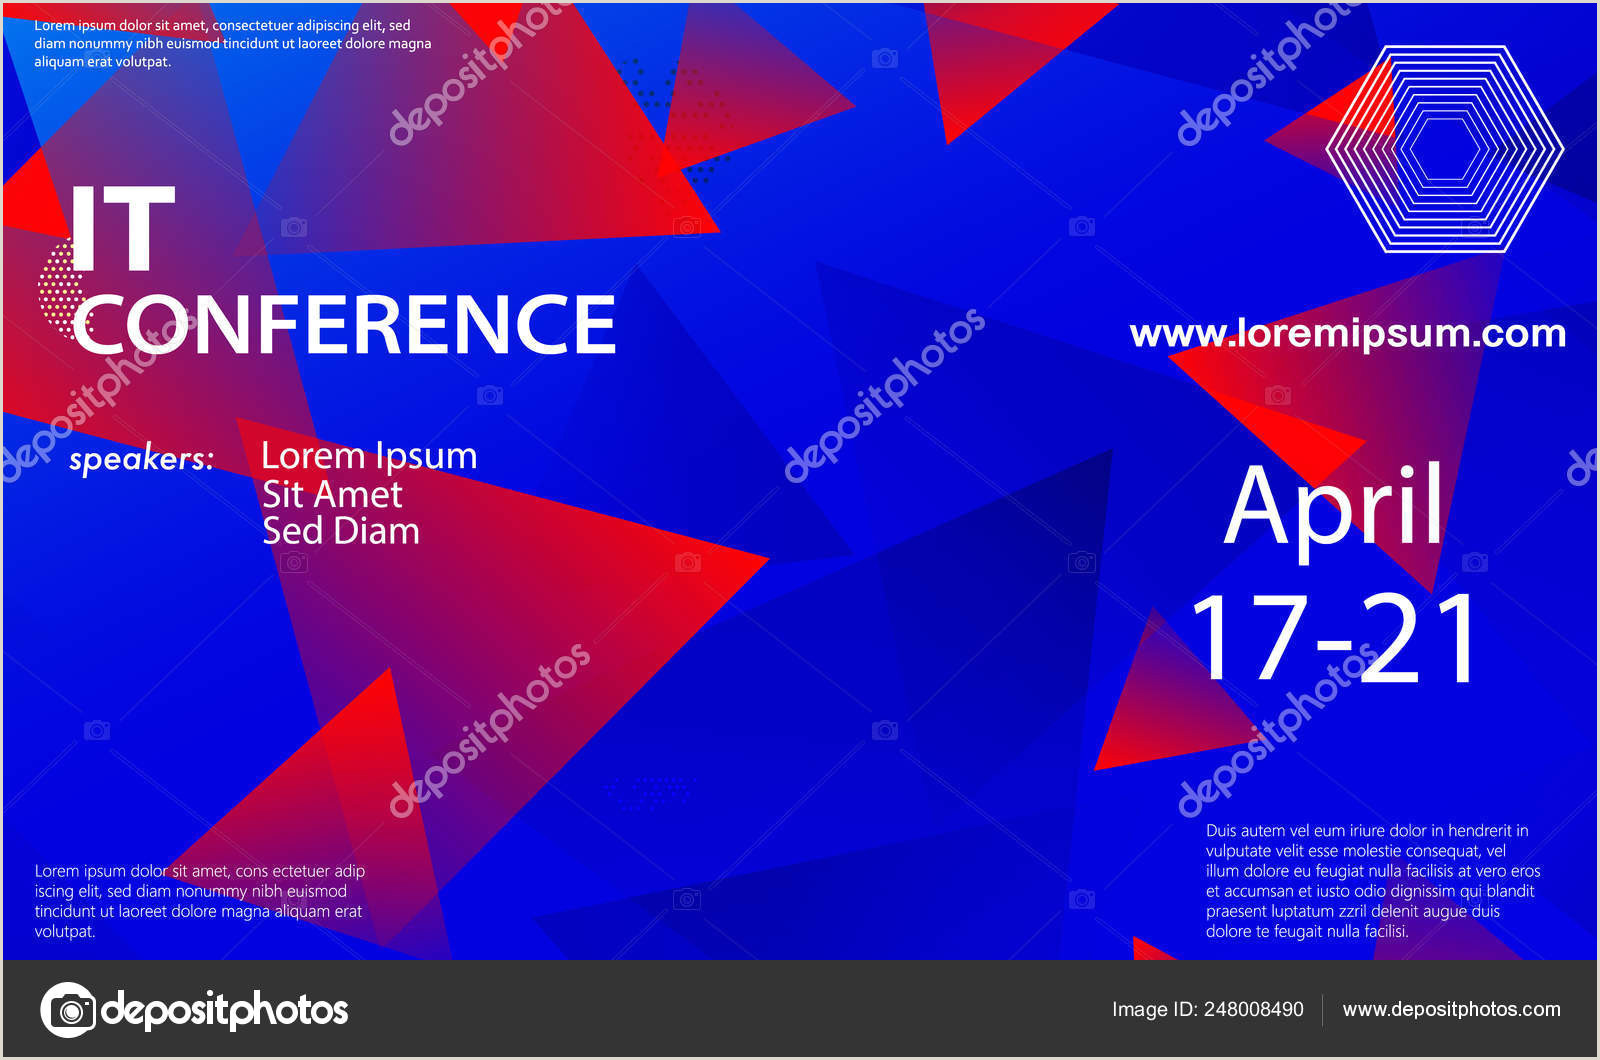 Conference Banners Design Conference Announcement Design Template — Stock Vector